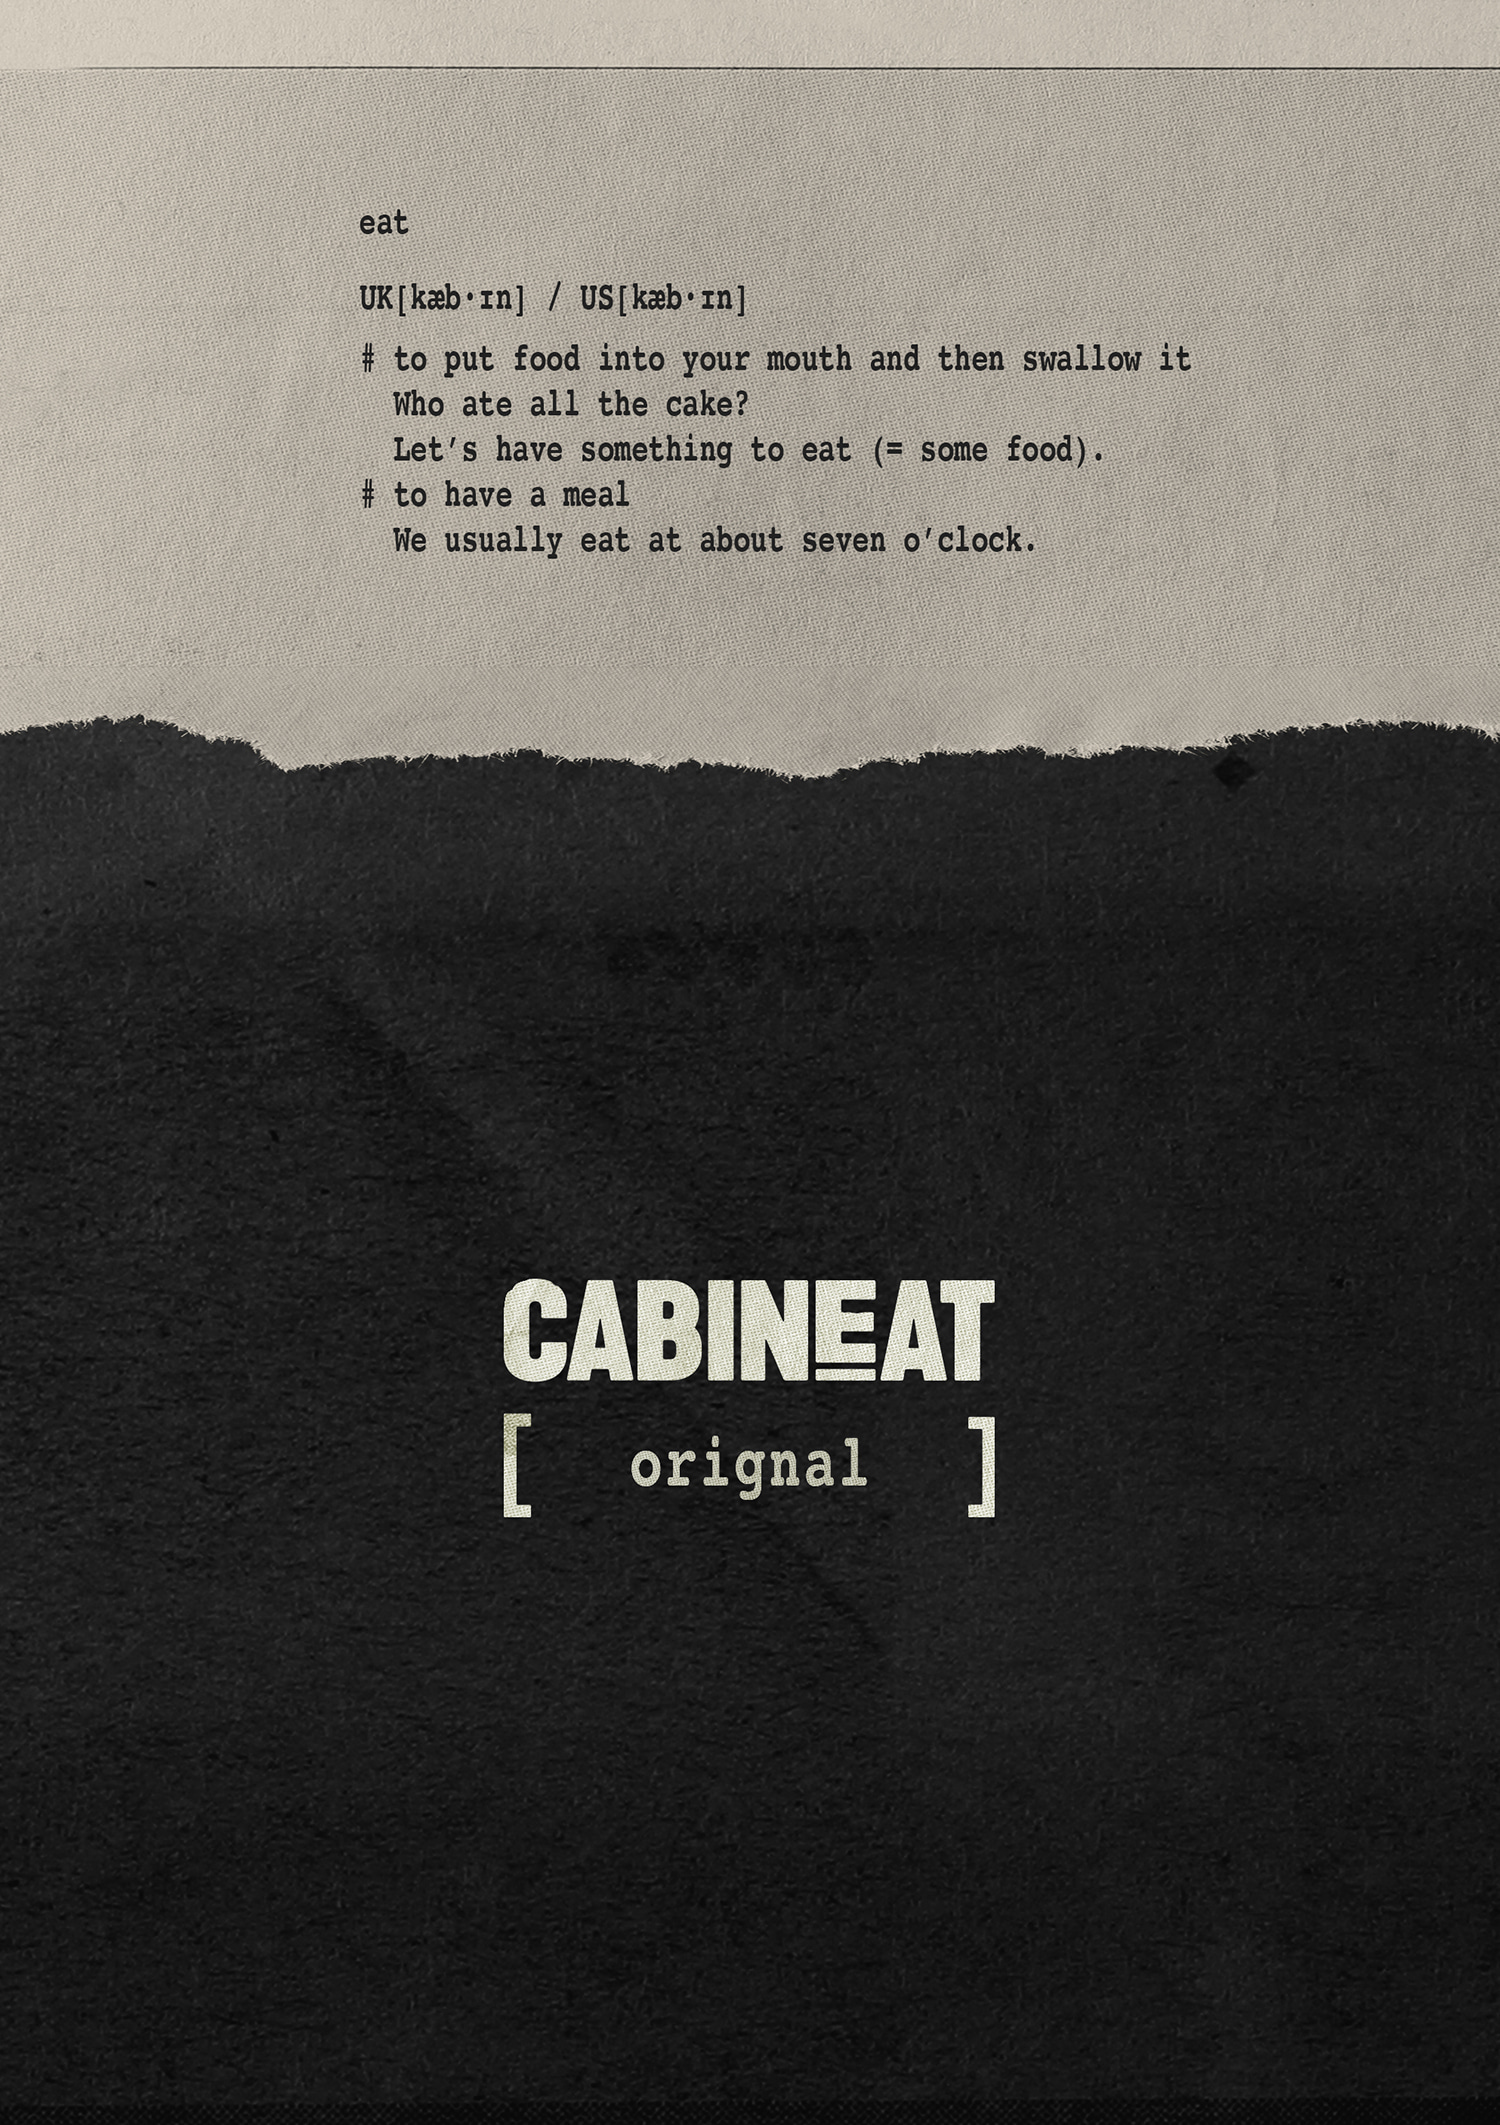 CABINEAT